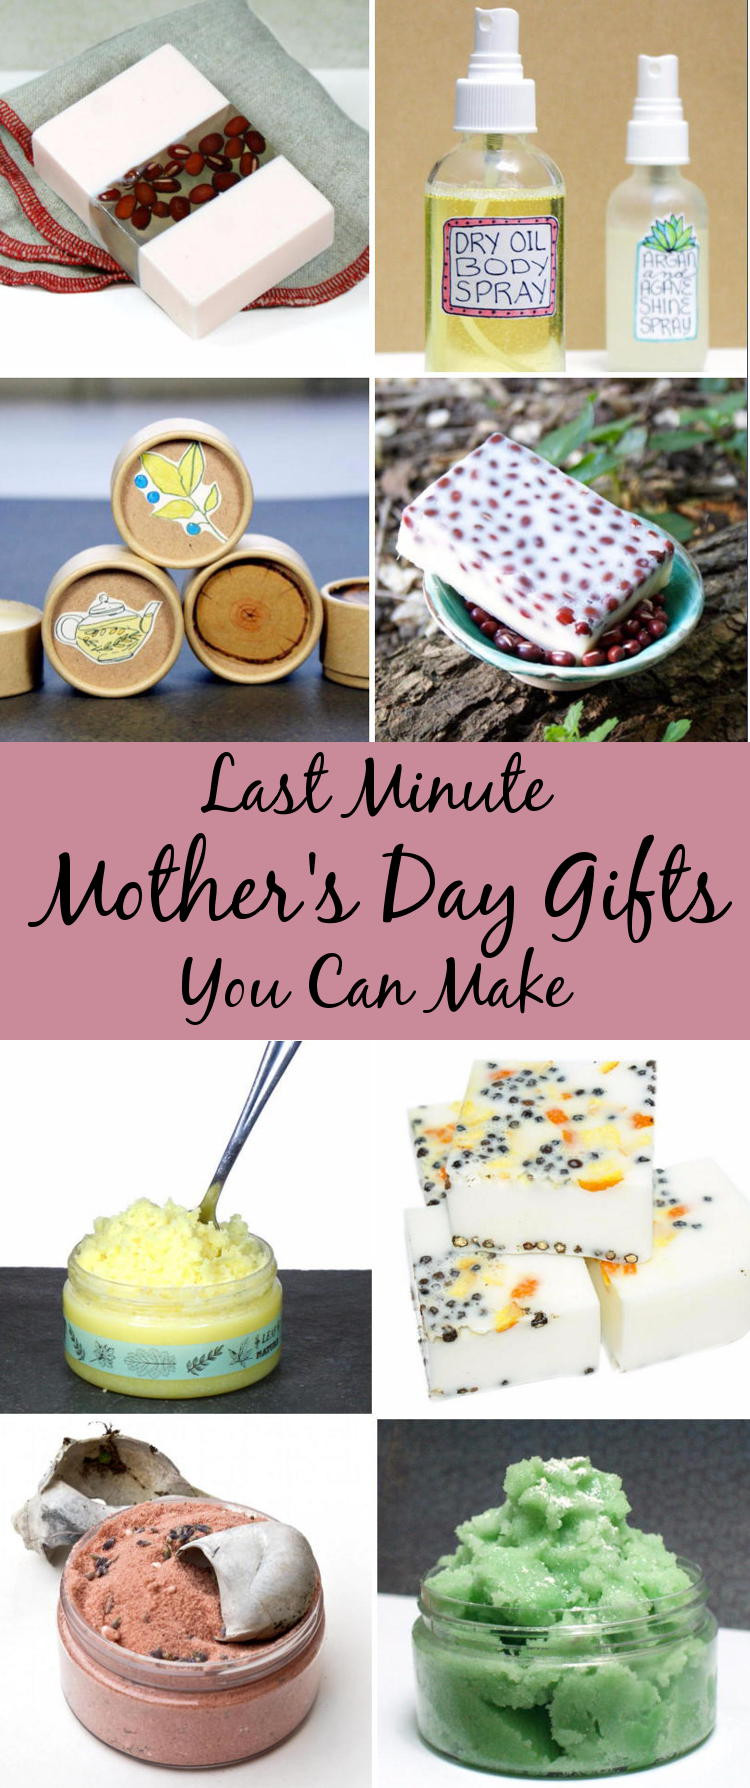 Best ideas about Mother'S Day Gift Ideas Diy . Save or Pin Last Minute Mother s Day Gift Ideas Soap Deli News Now.